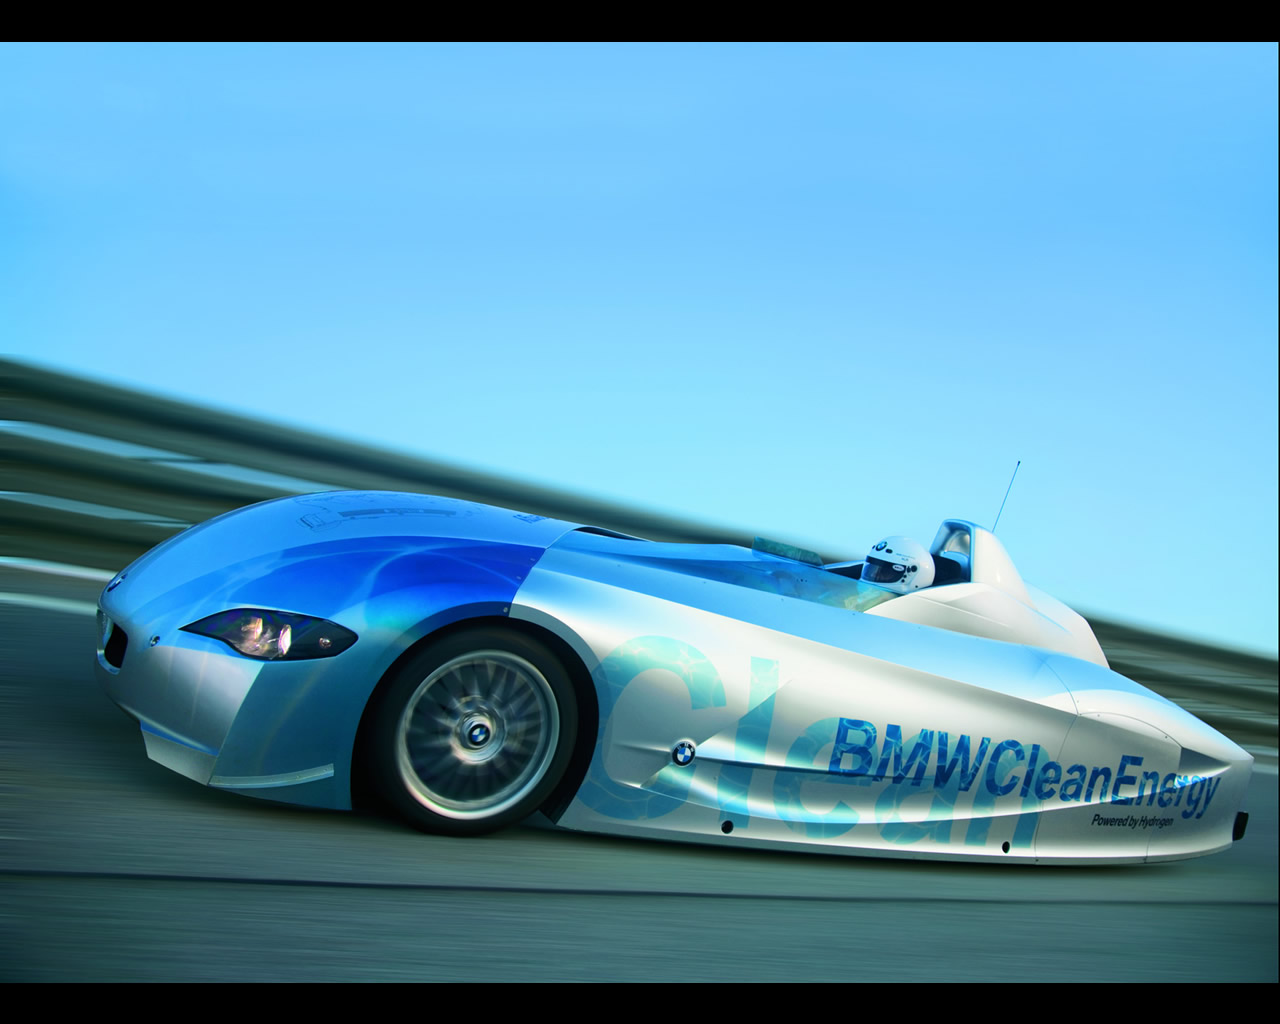 Bmw H2r Hydrogen Record Car 2004